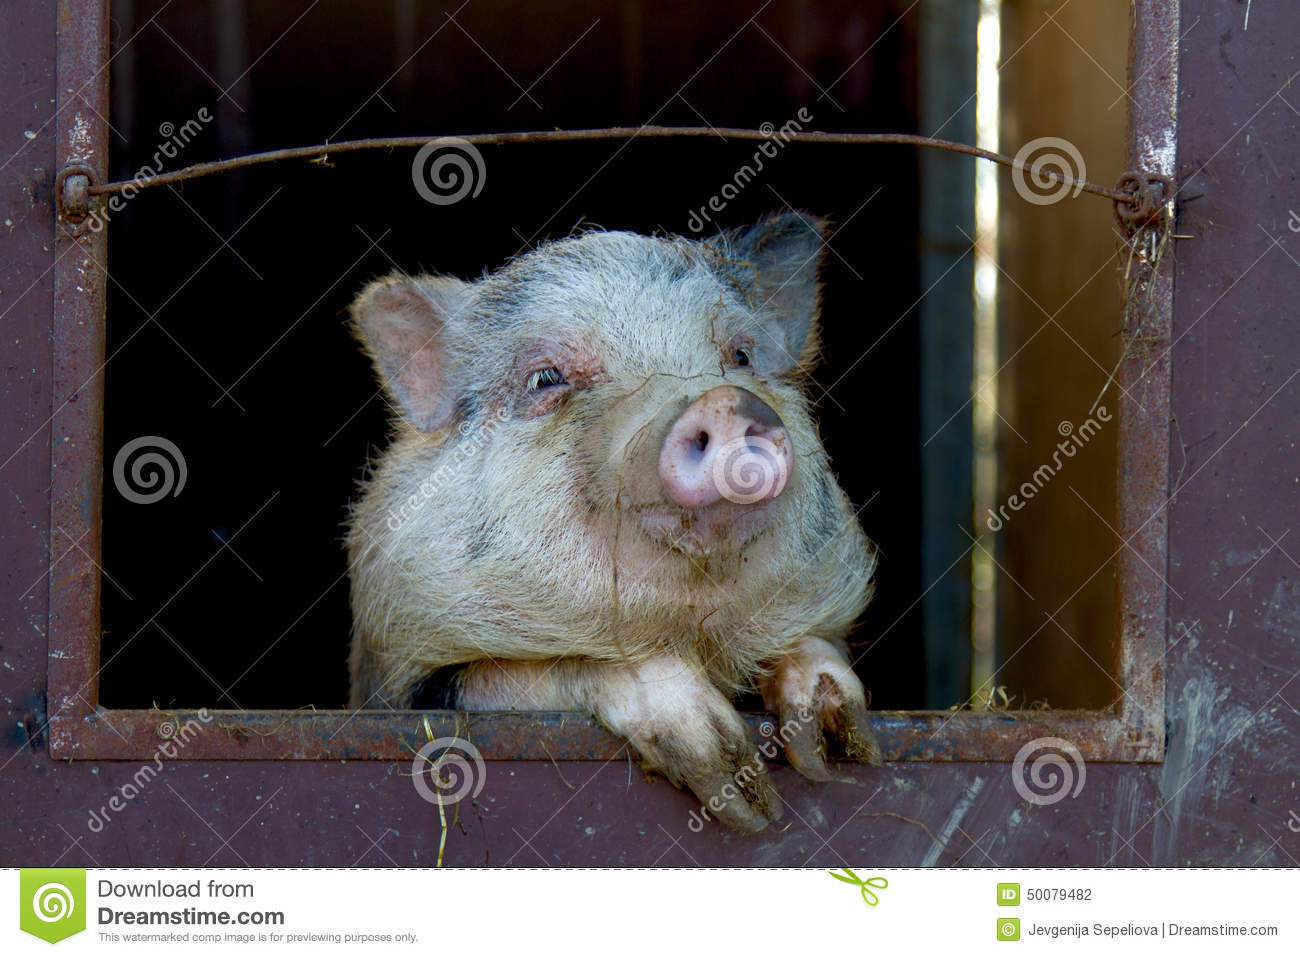 The Funny Pig In The Farm Stock Photo - Image: 50079482